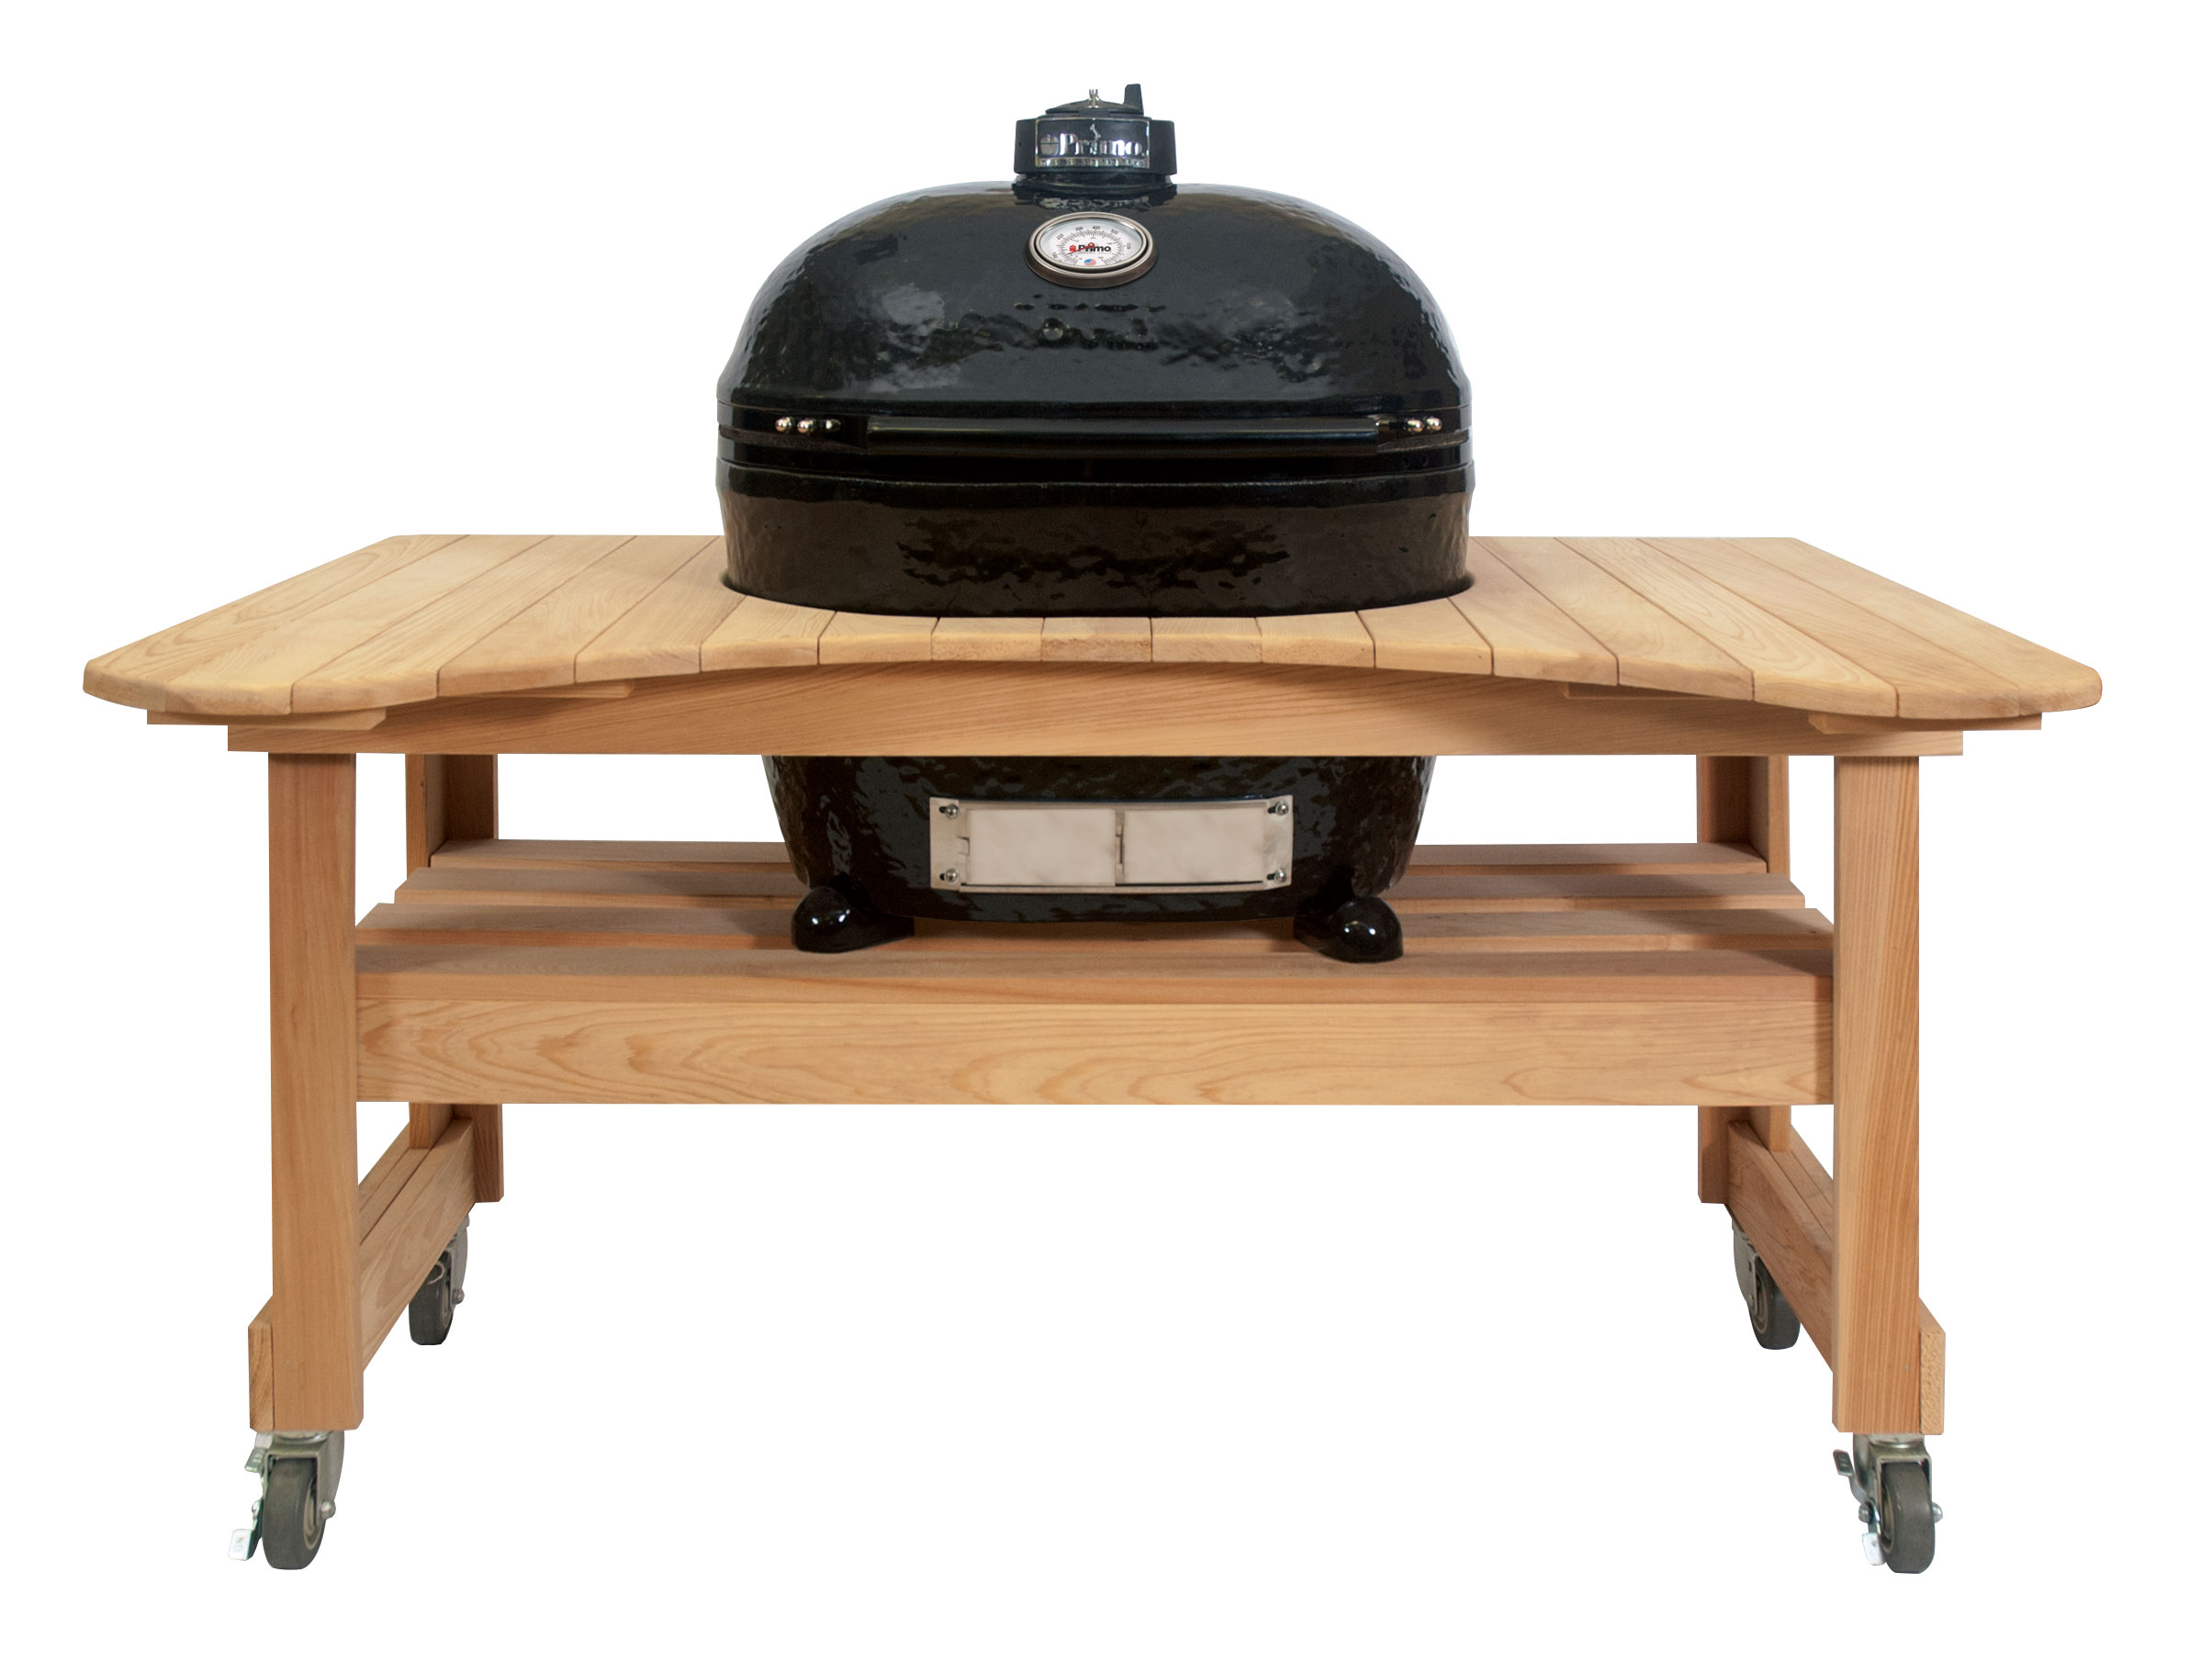 Primo Ceramic Grill Oval Xl 400 Alabama Gas Light Amp Grill